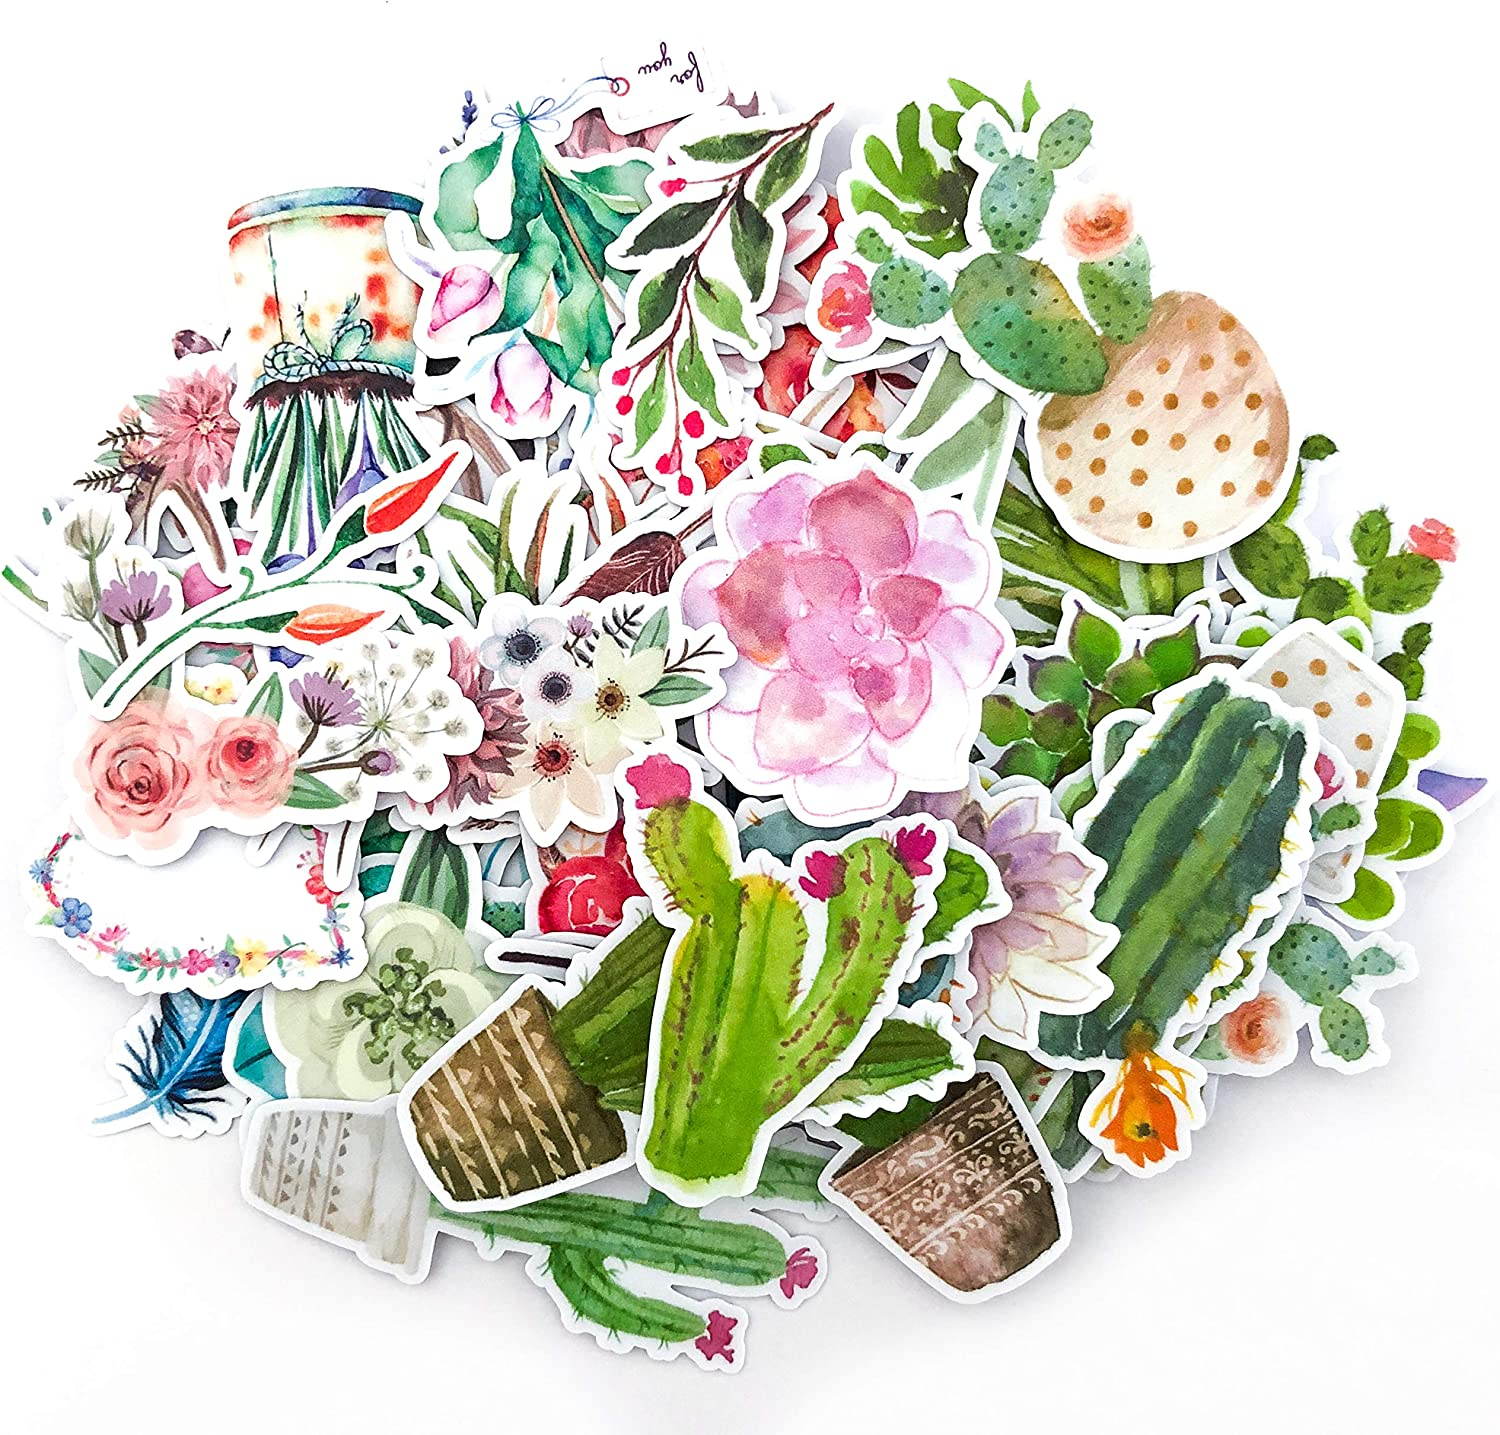 Navy Peony Watercolor Flower,Cactus and Succulent Plants Sticker Pack| Mini Waterproof Decals for Laptops, Water Bottles and Phones| Artsy Floral Stickers for Your Scrapbooking and Bullet Journaling